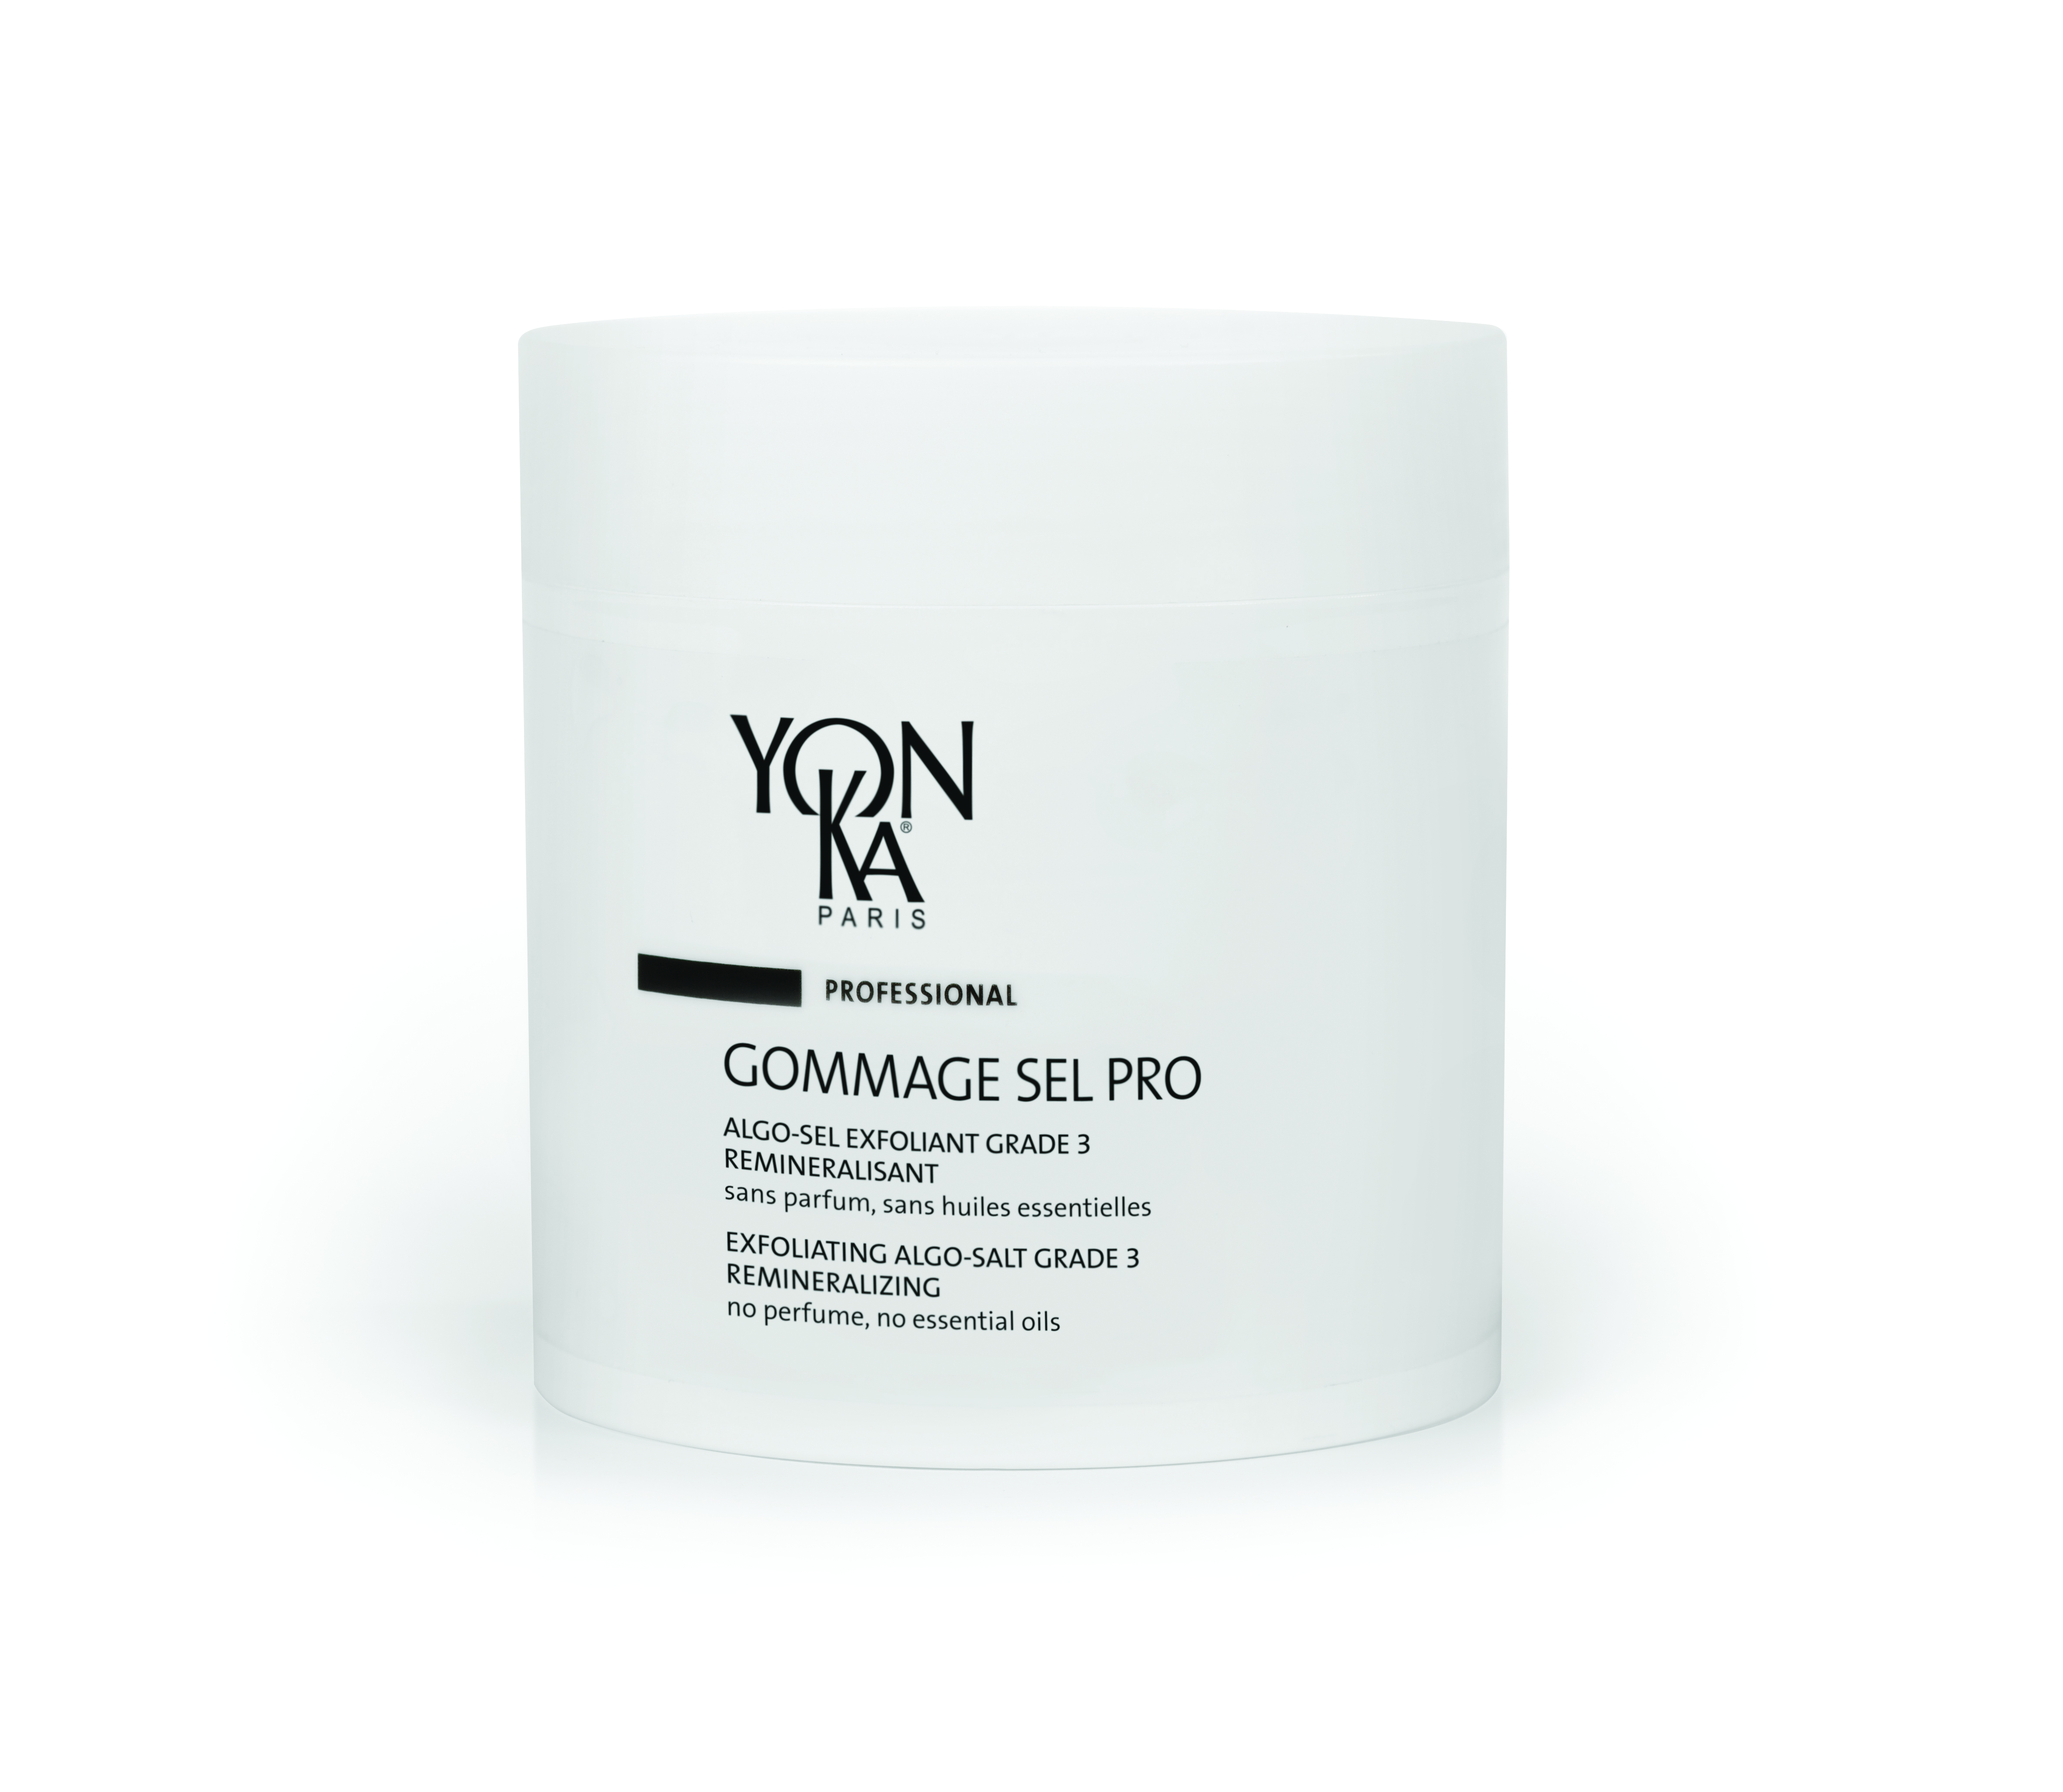 Gommage Sel Pro (500 g)